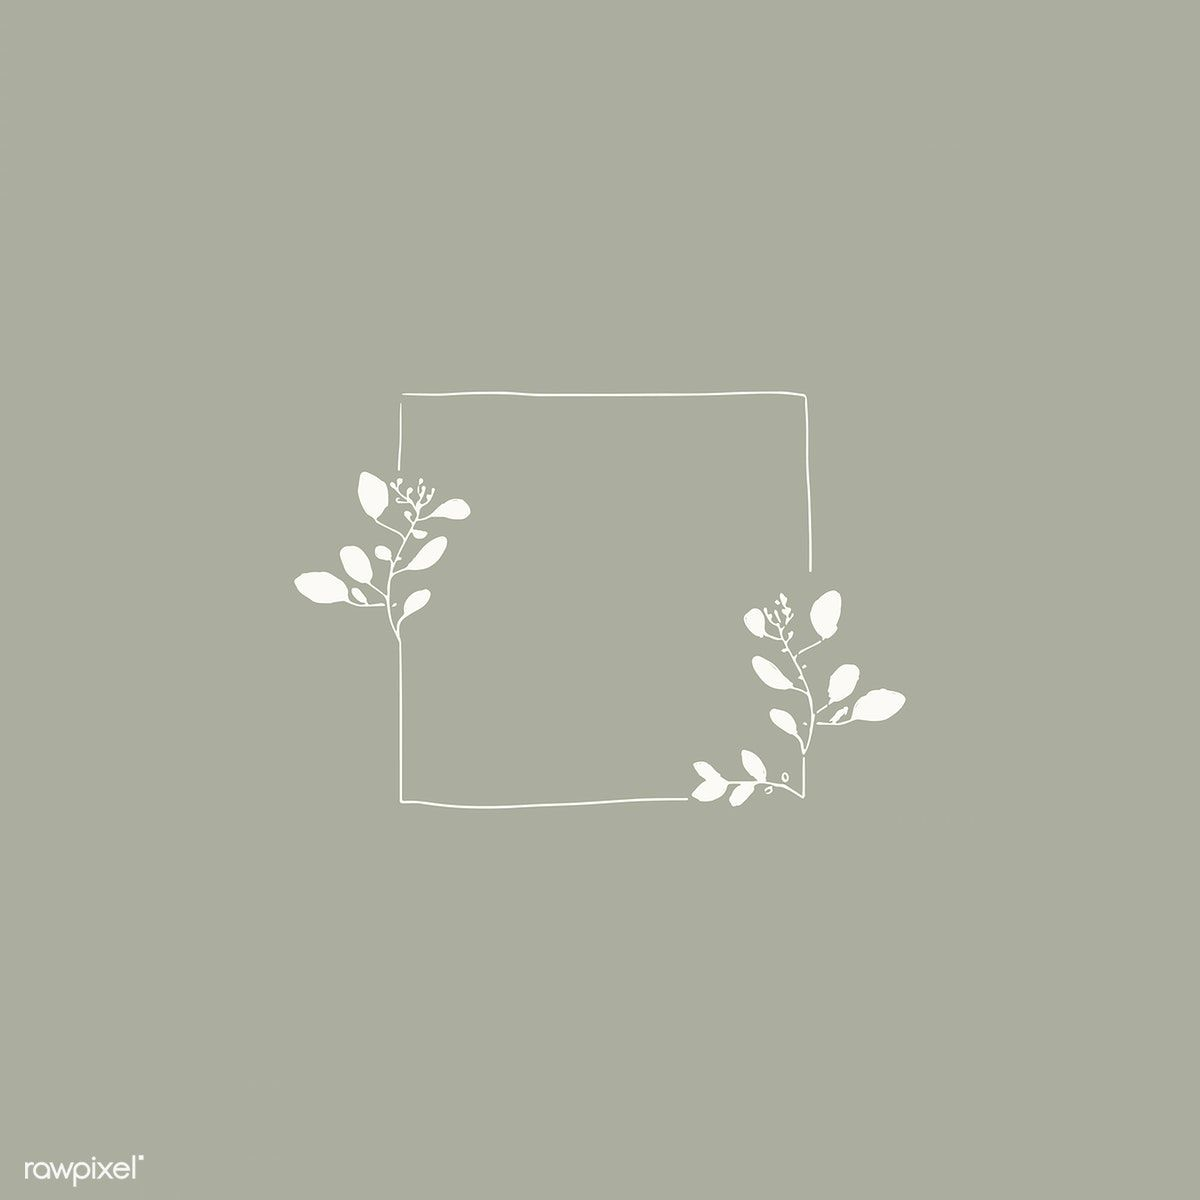 Doodle square floral square frame vector | free image by rawpixel.com / Adj